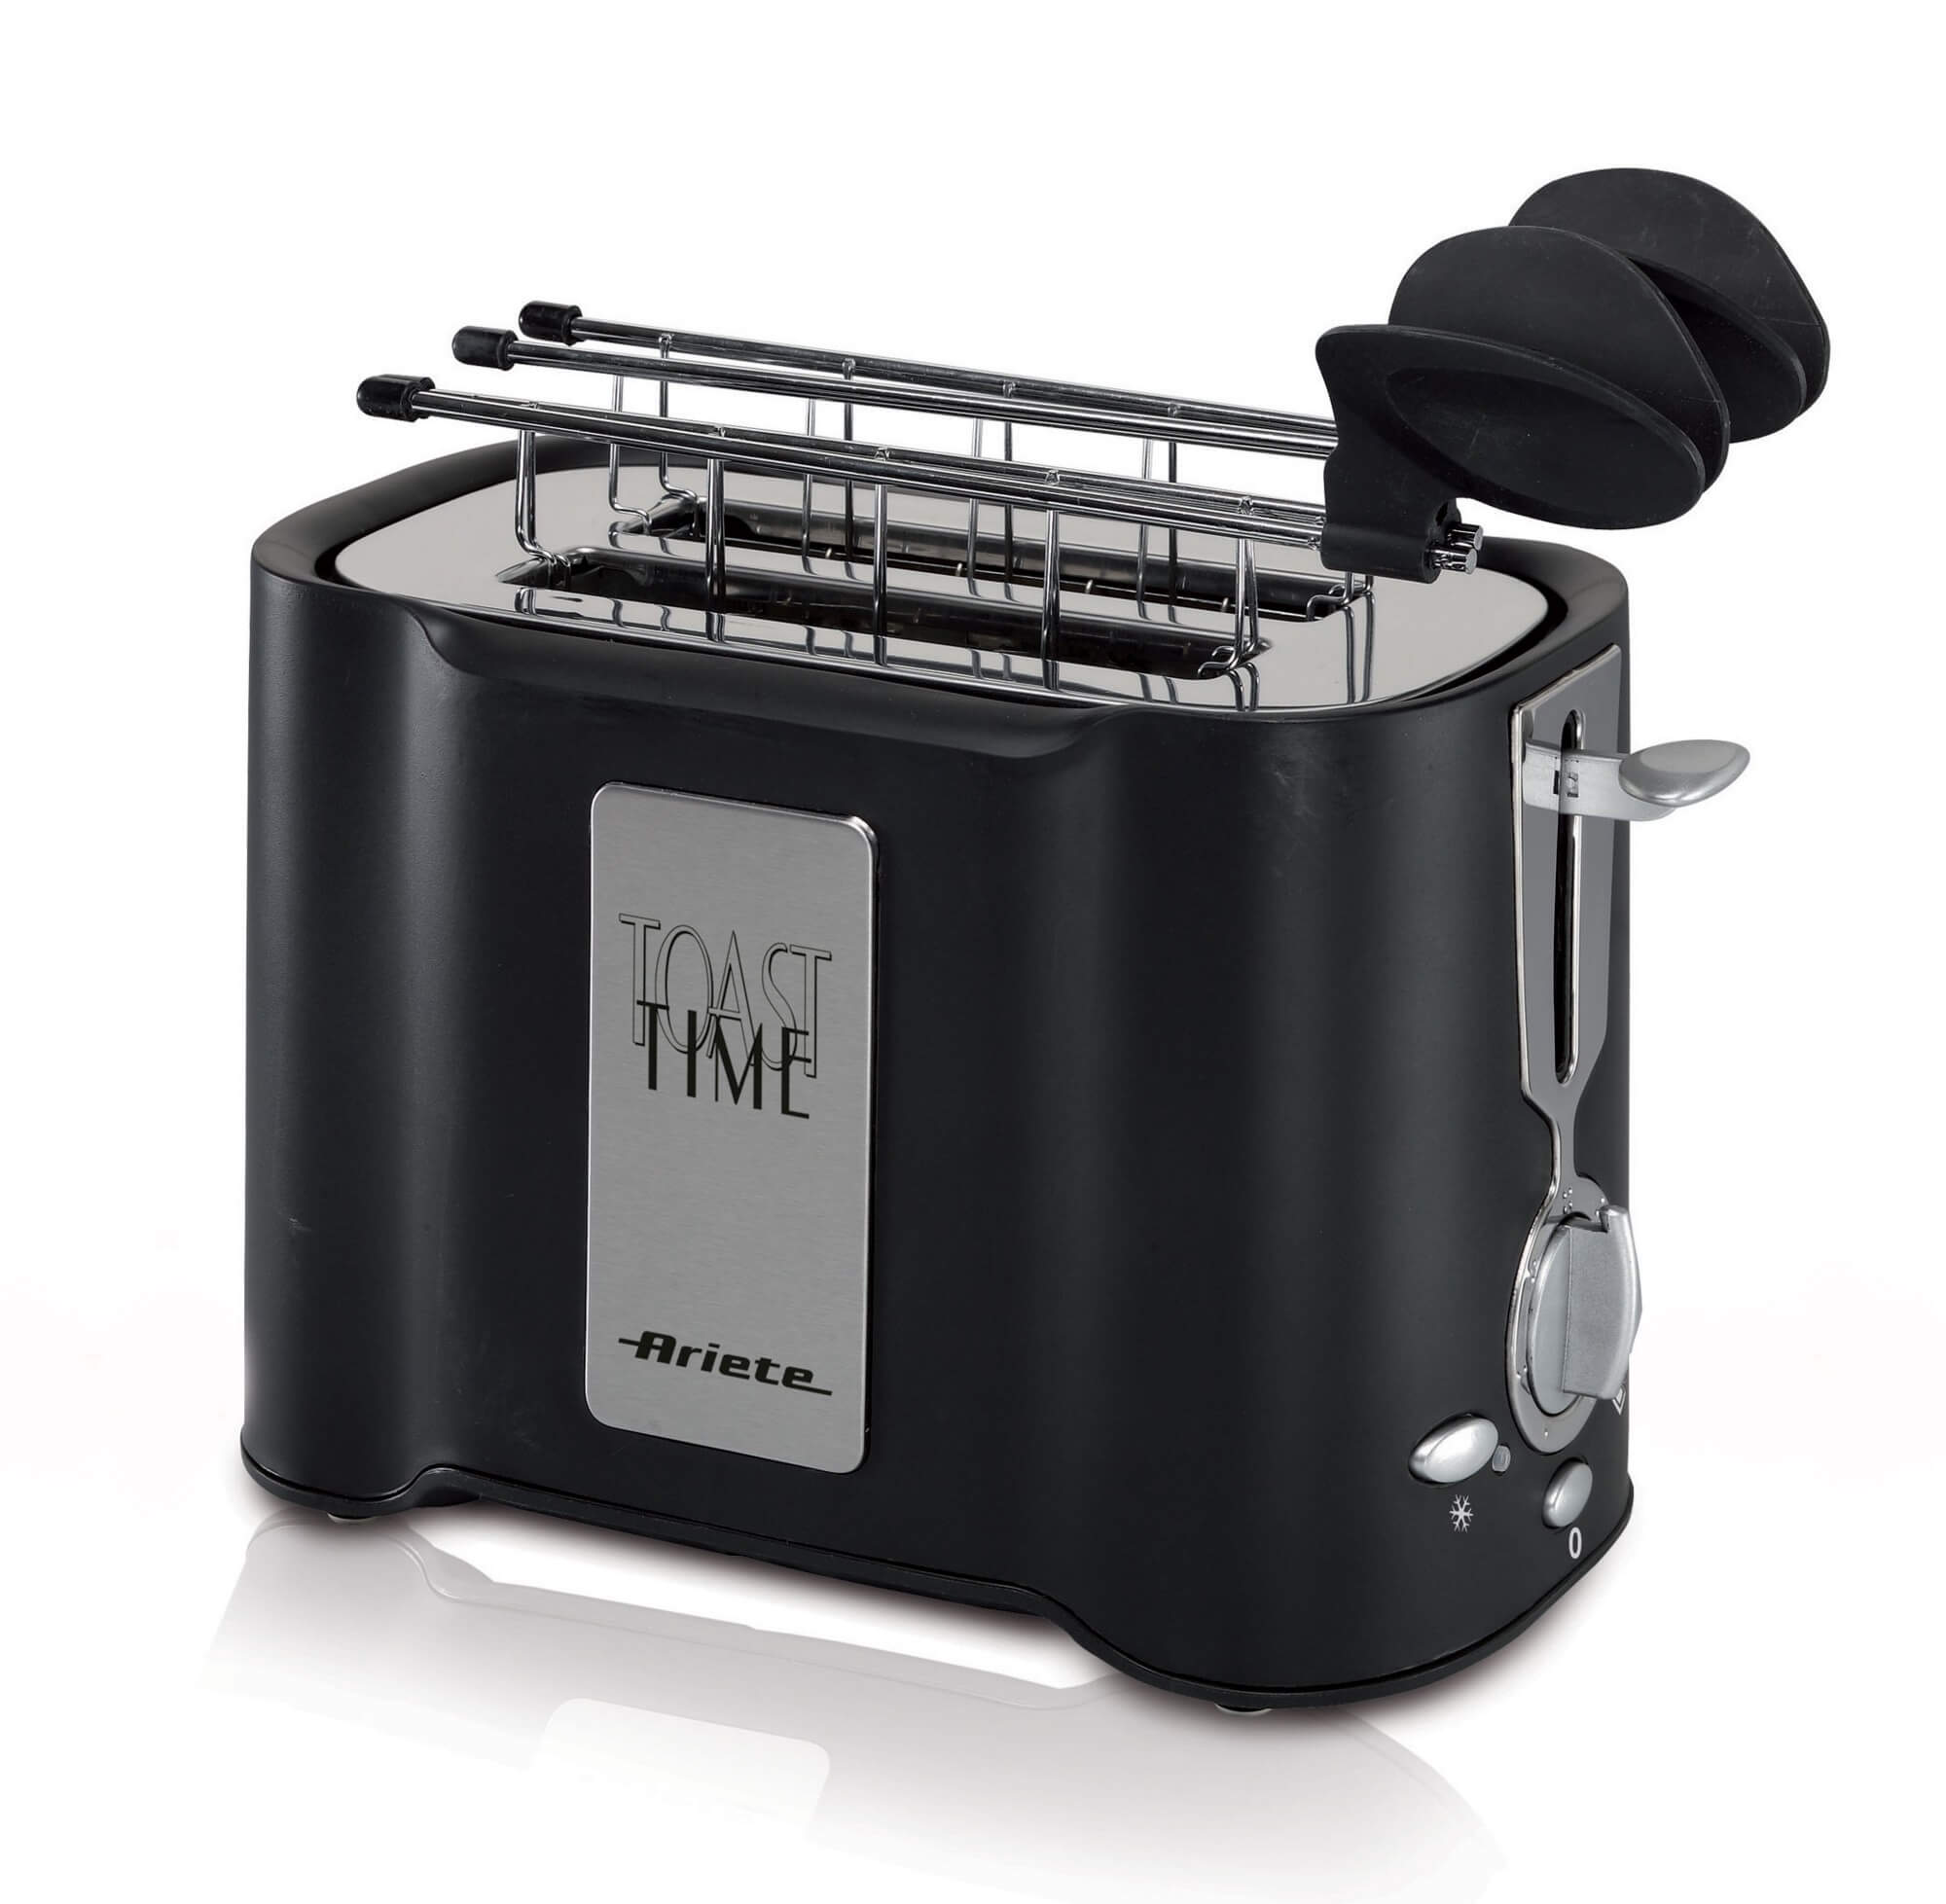 Image of Toast time